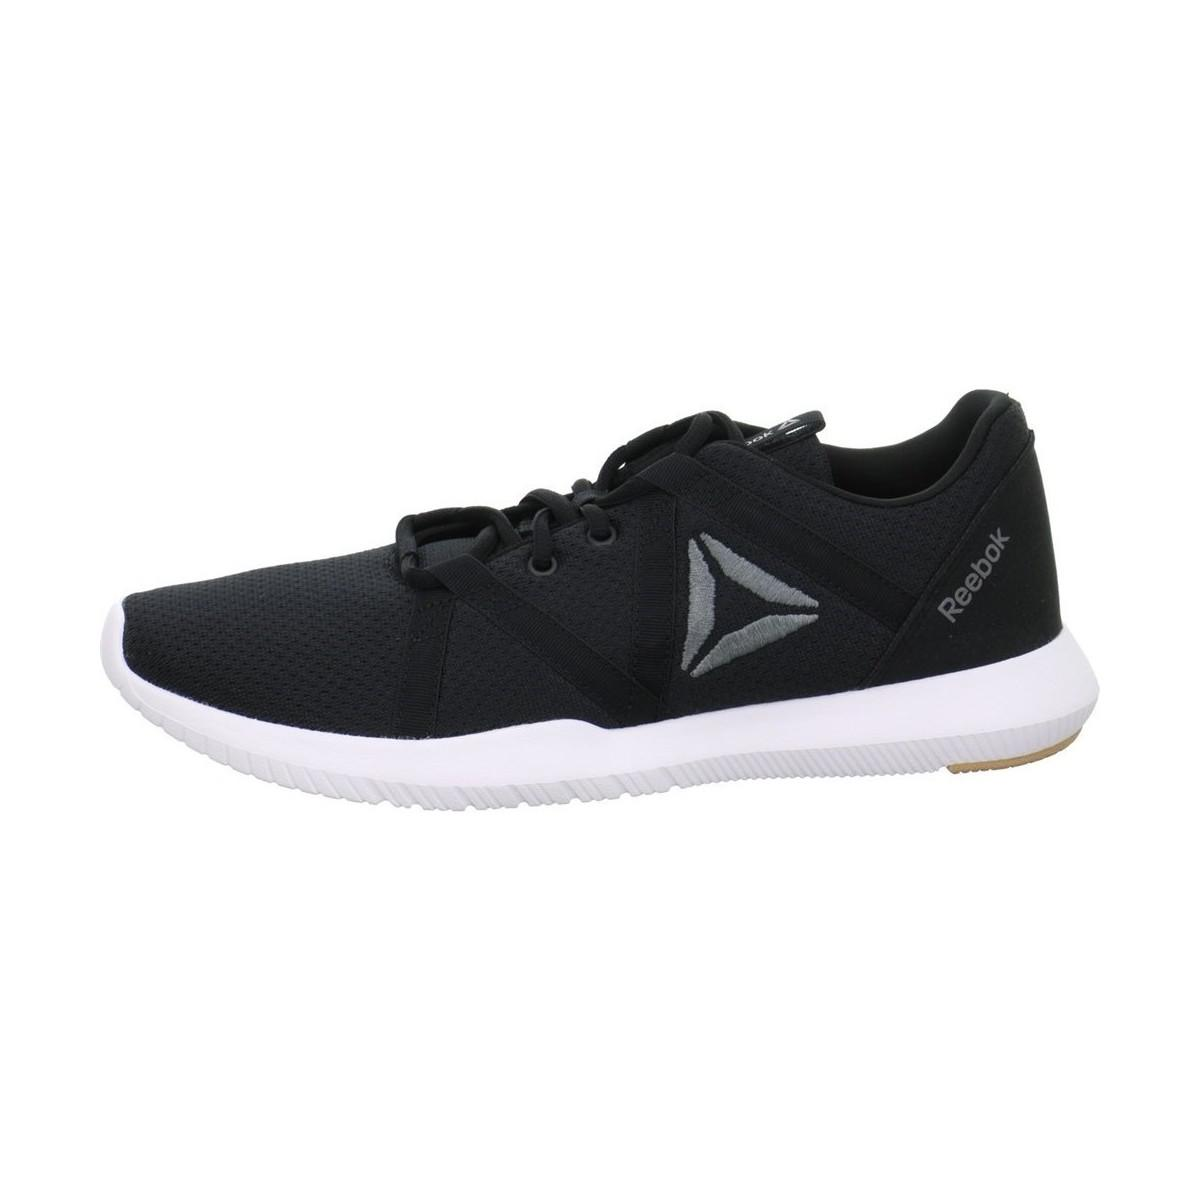 c43d2a90facd Reebok Reago Essential Men s Shoes (trainers) In Black in Black for ...